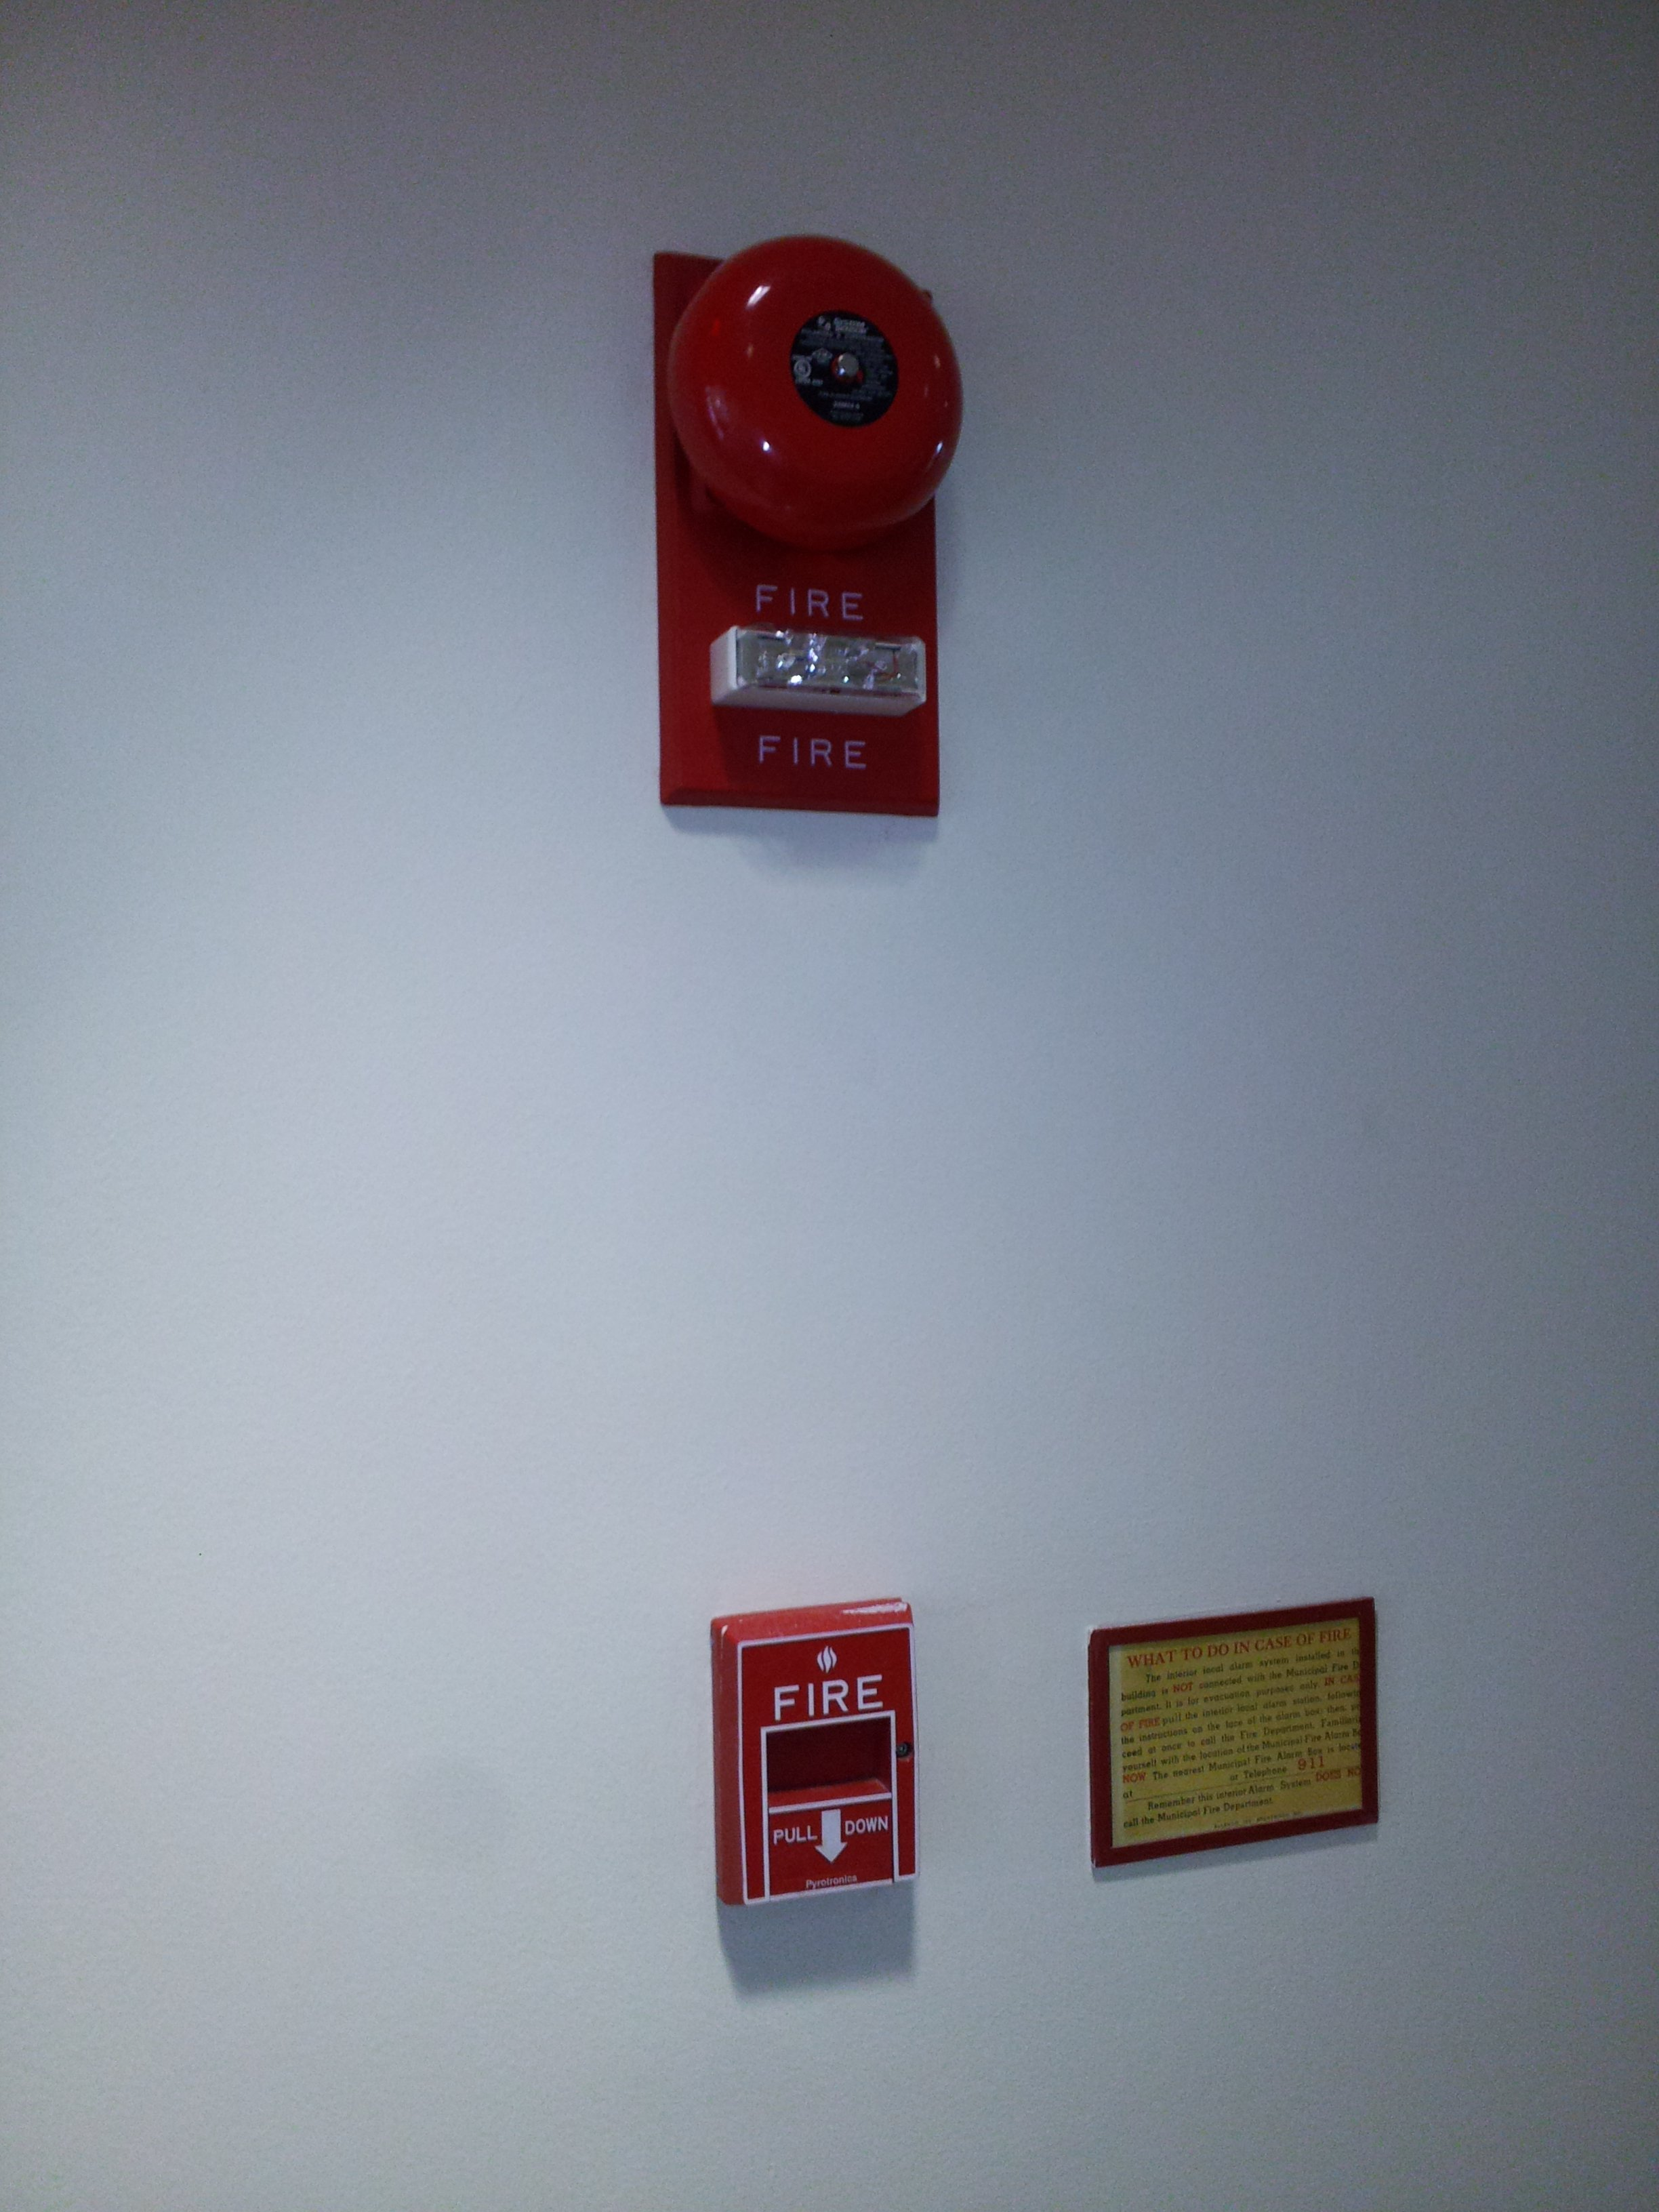 The Schumin Web 187 New Fire Alarms At Work Again